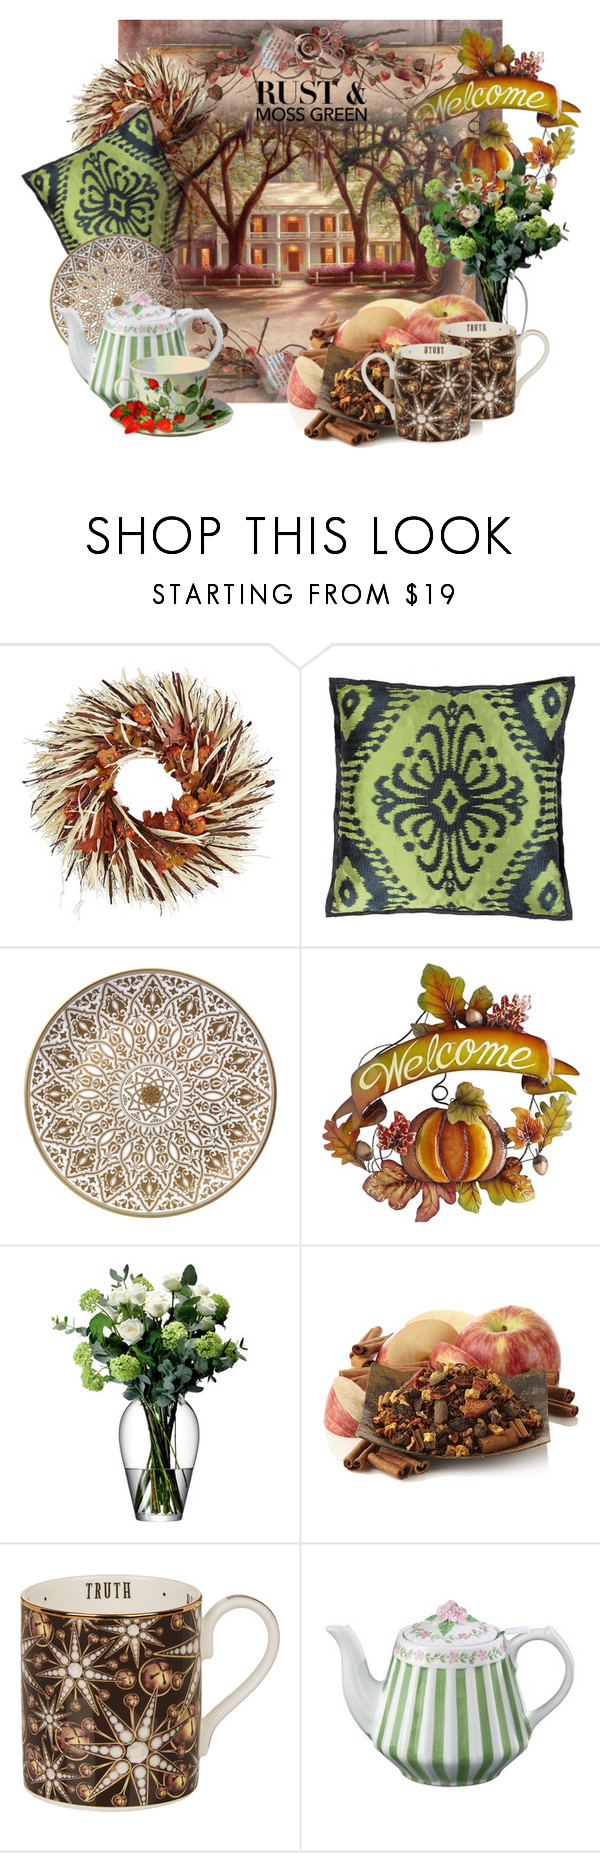 """""""Rust and Moss Green 1."""" by leptismagna ❤ liked on Polyvore featuring interior, interiors, interior design, home, home decor, interior decorating, Pier 1 Imports, Designers Guild, Bernardaud and LSA International"""